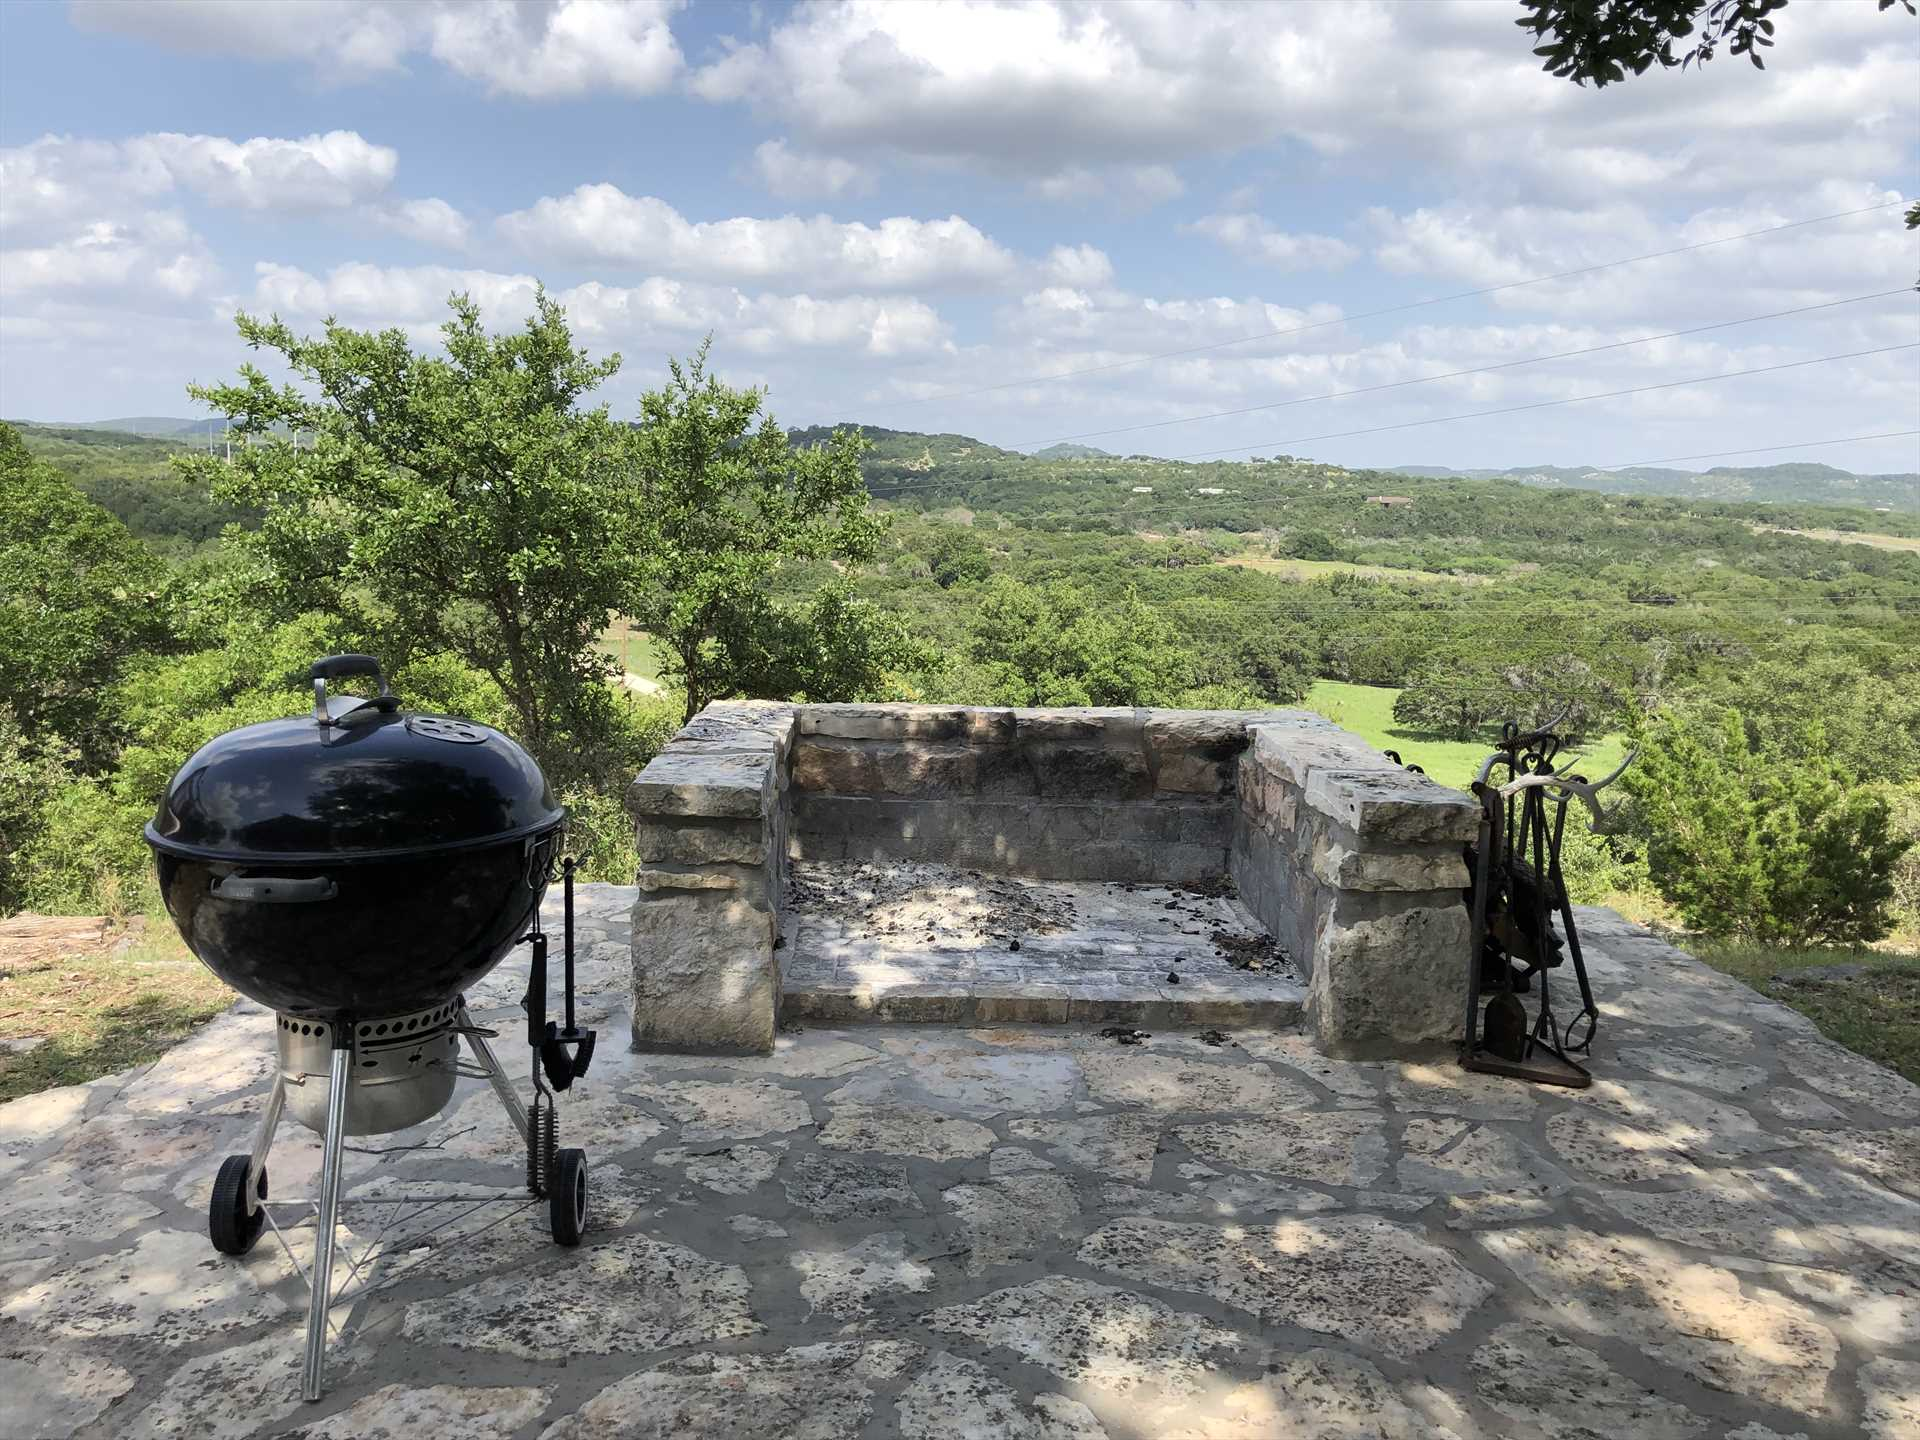 Keep your eyes on your steaks and s'mores as you take advantage of the charcoal grill and fire pit. We know the lofty view can be distracting!